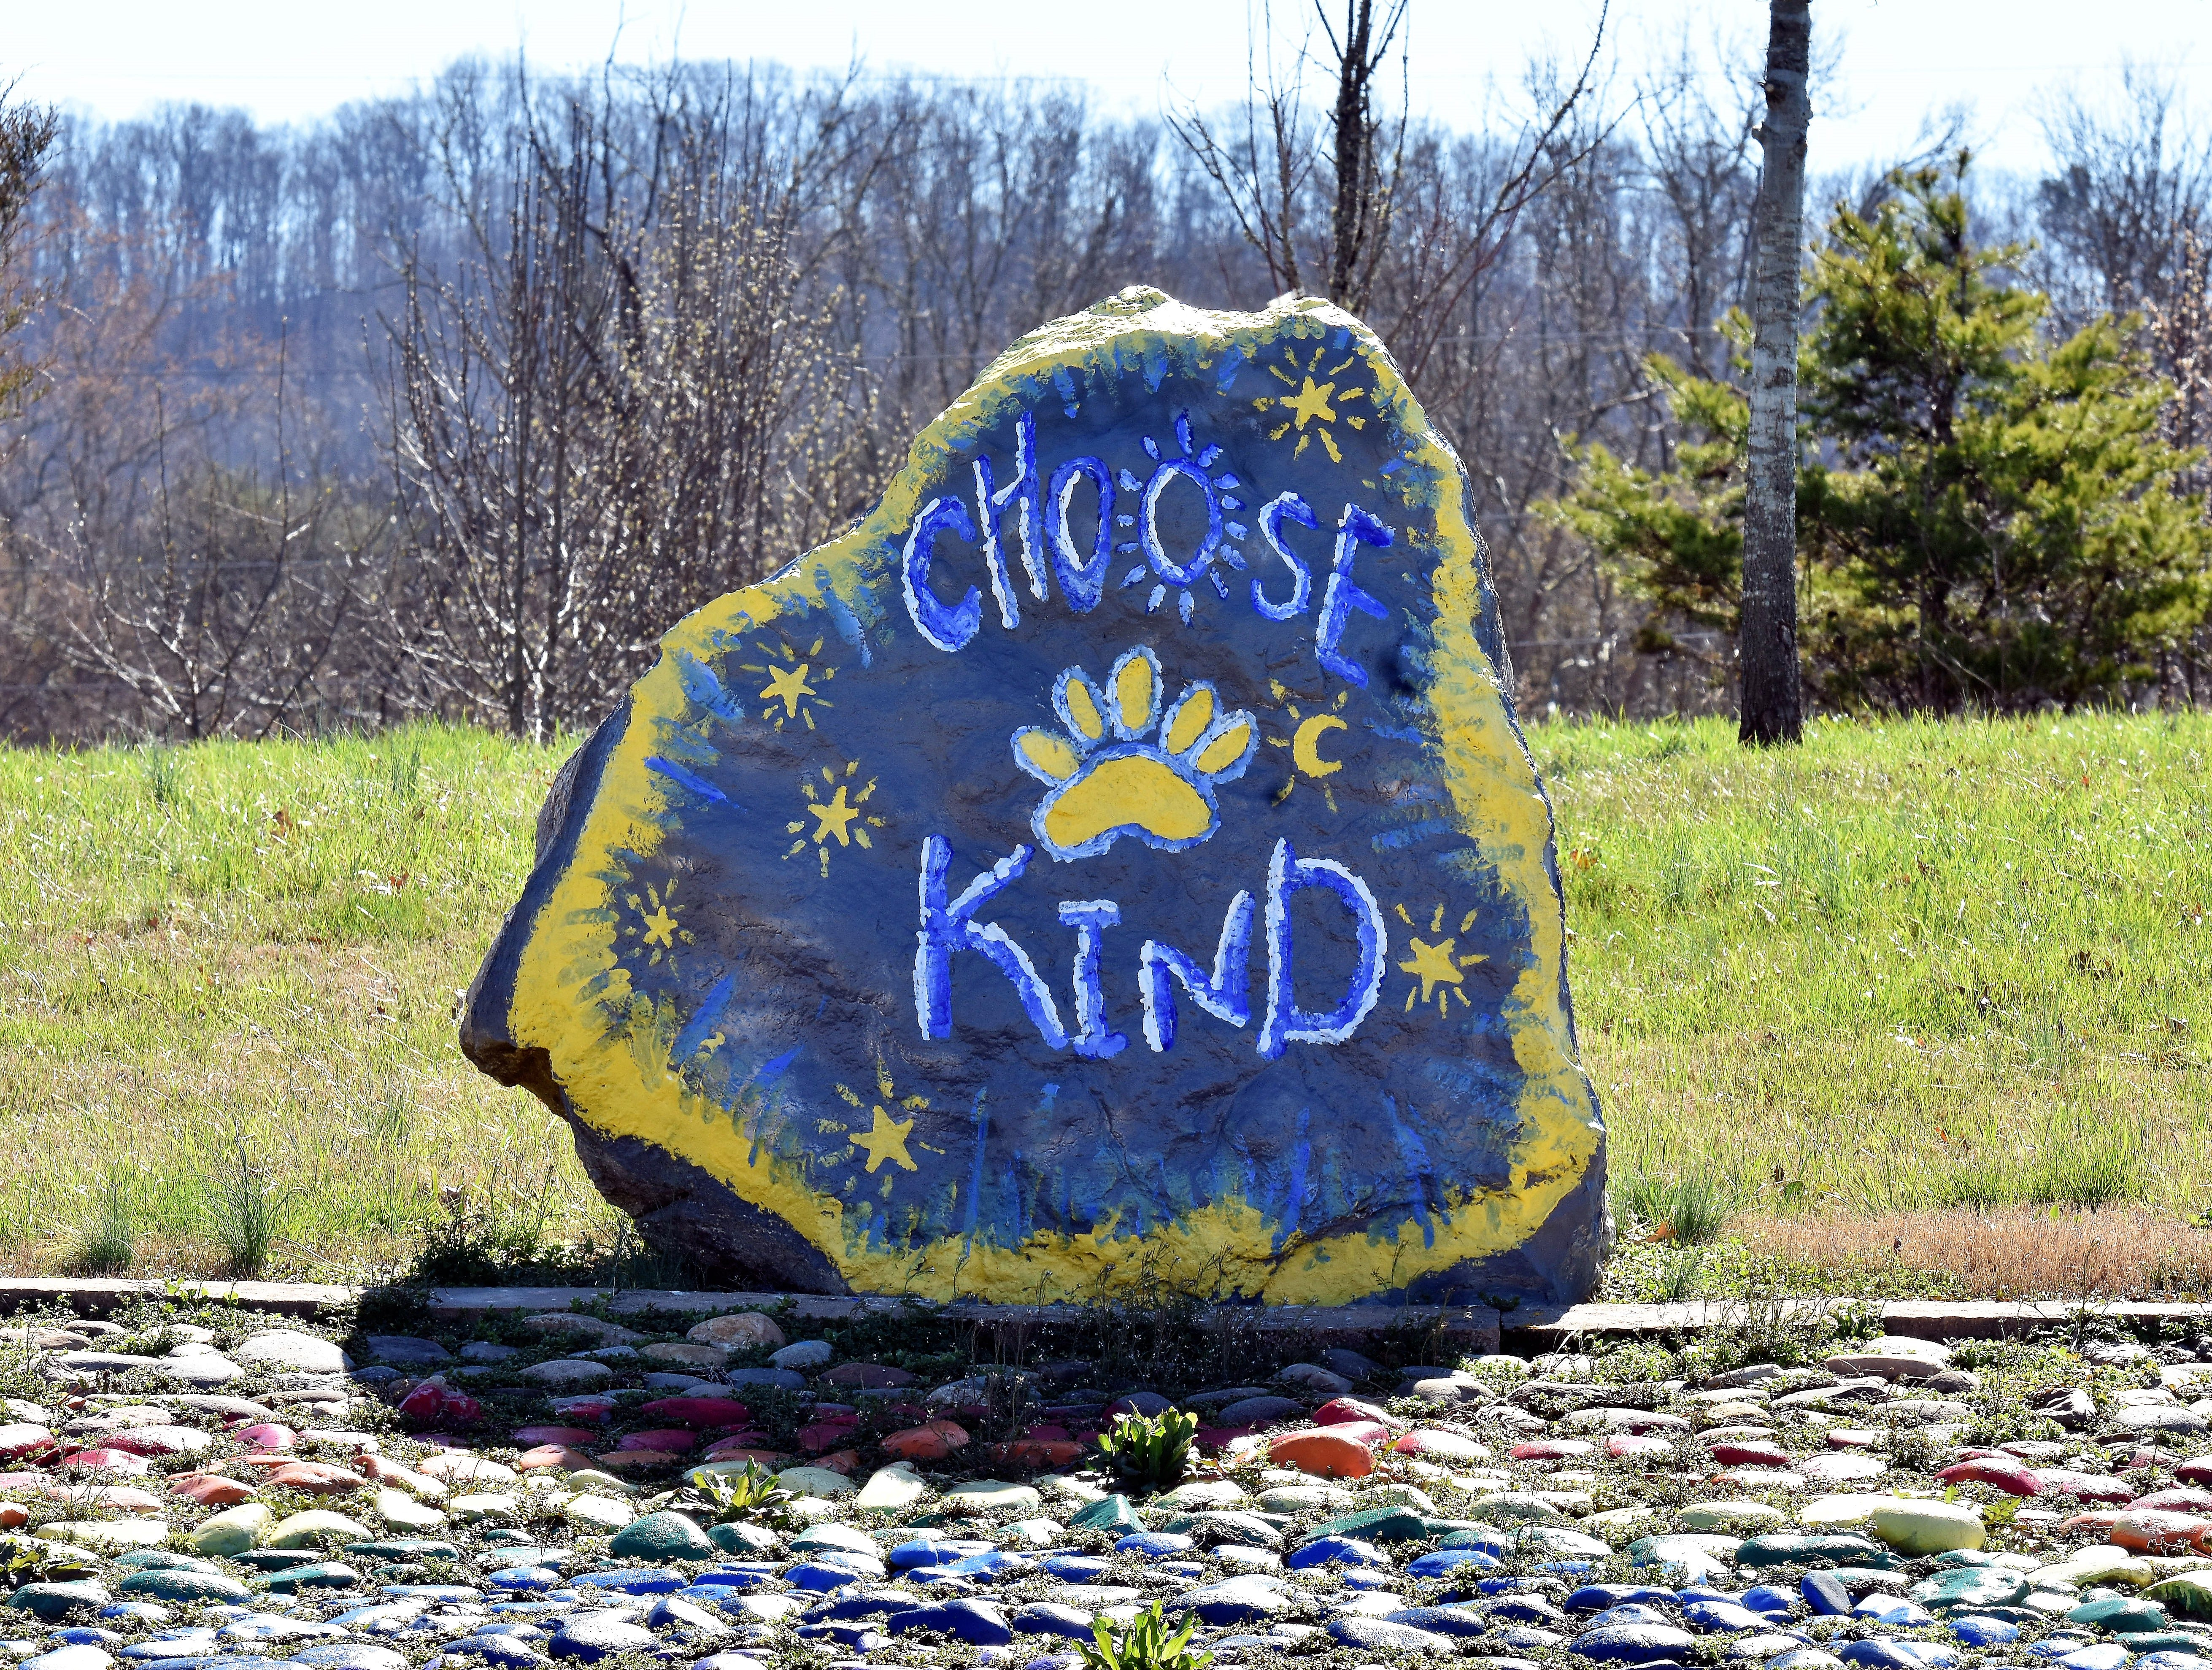 This huge rock on the campus of Brickey-McCloud Elementary reminds parents and students in the school's drop off/pick up line to choose kindness.